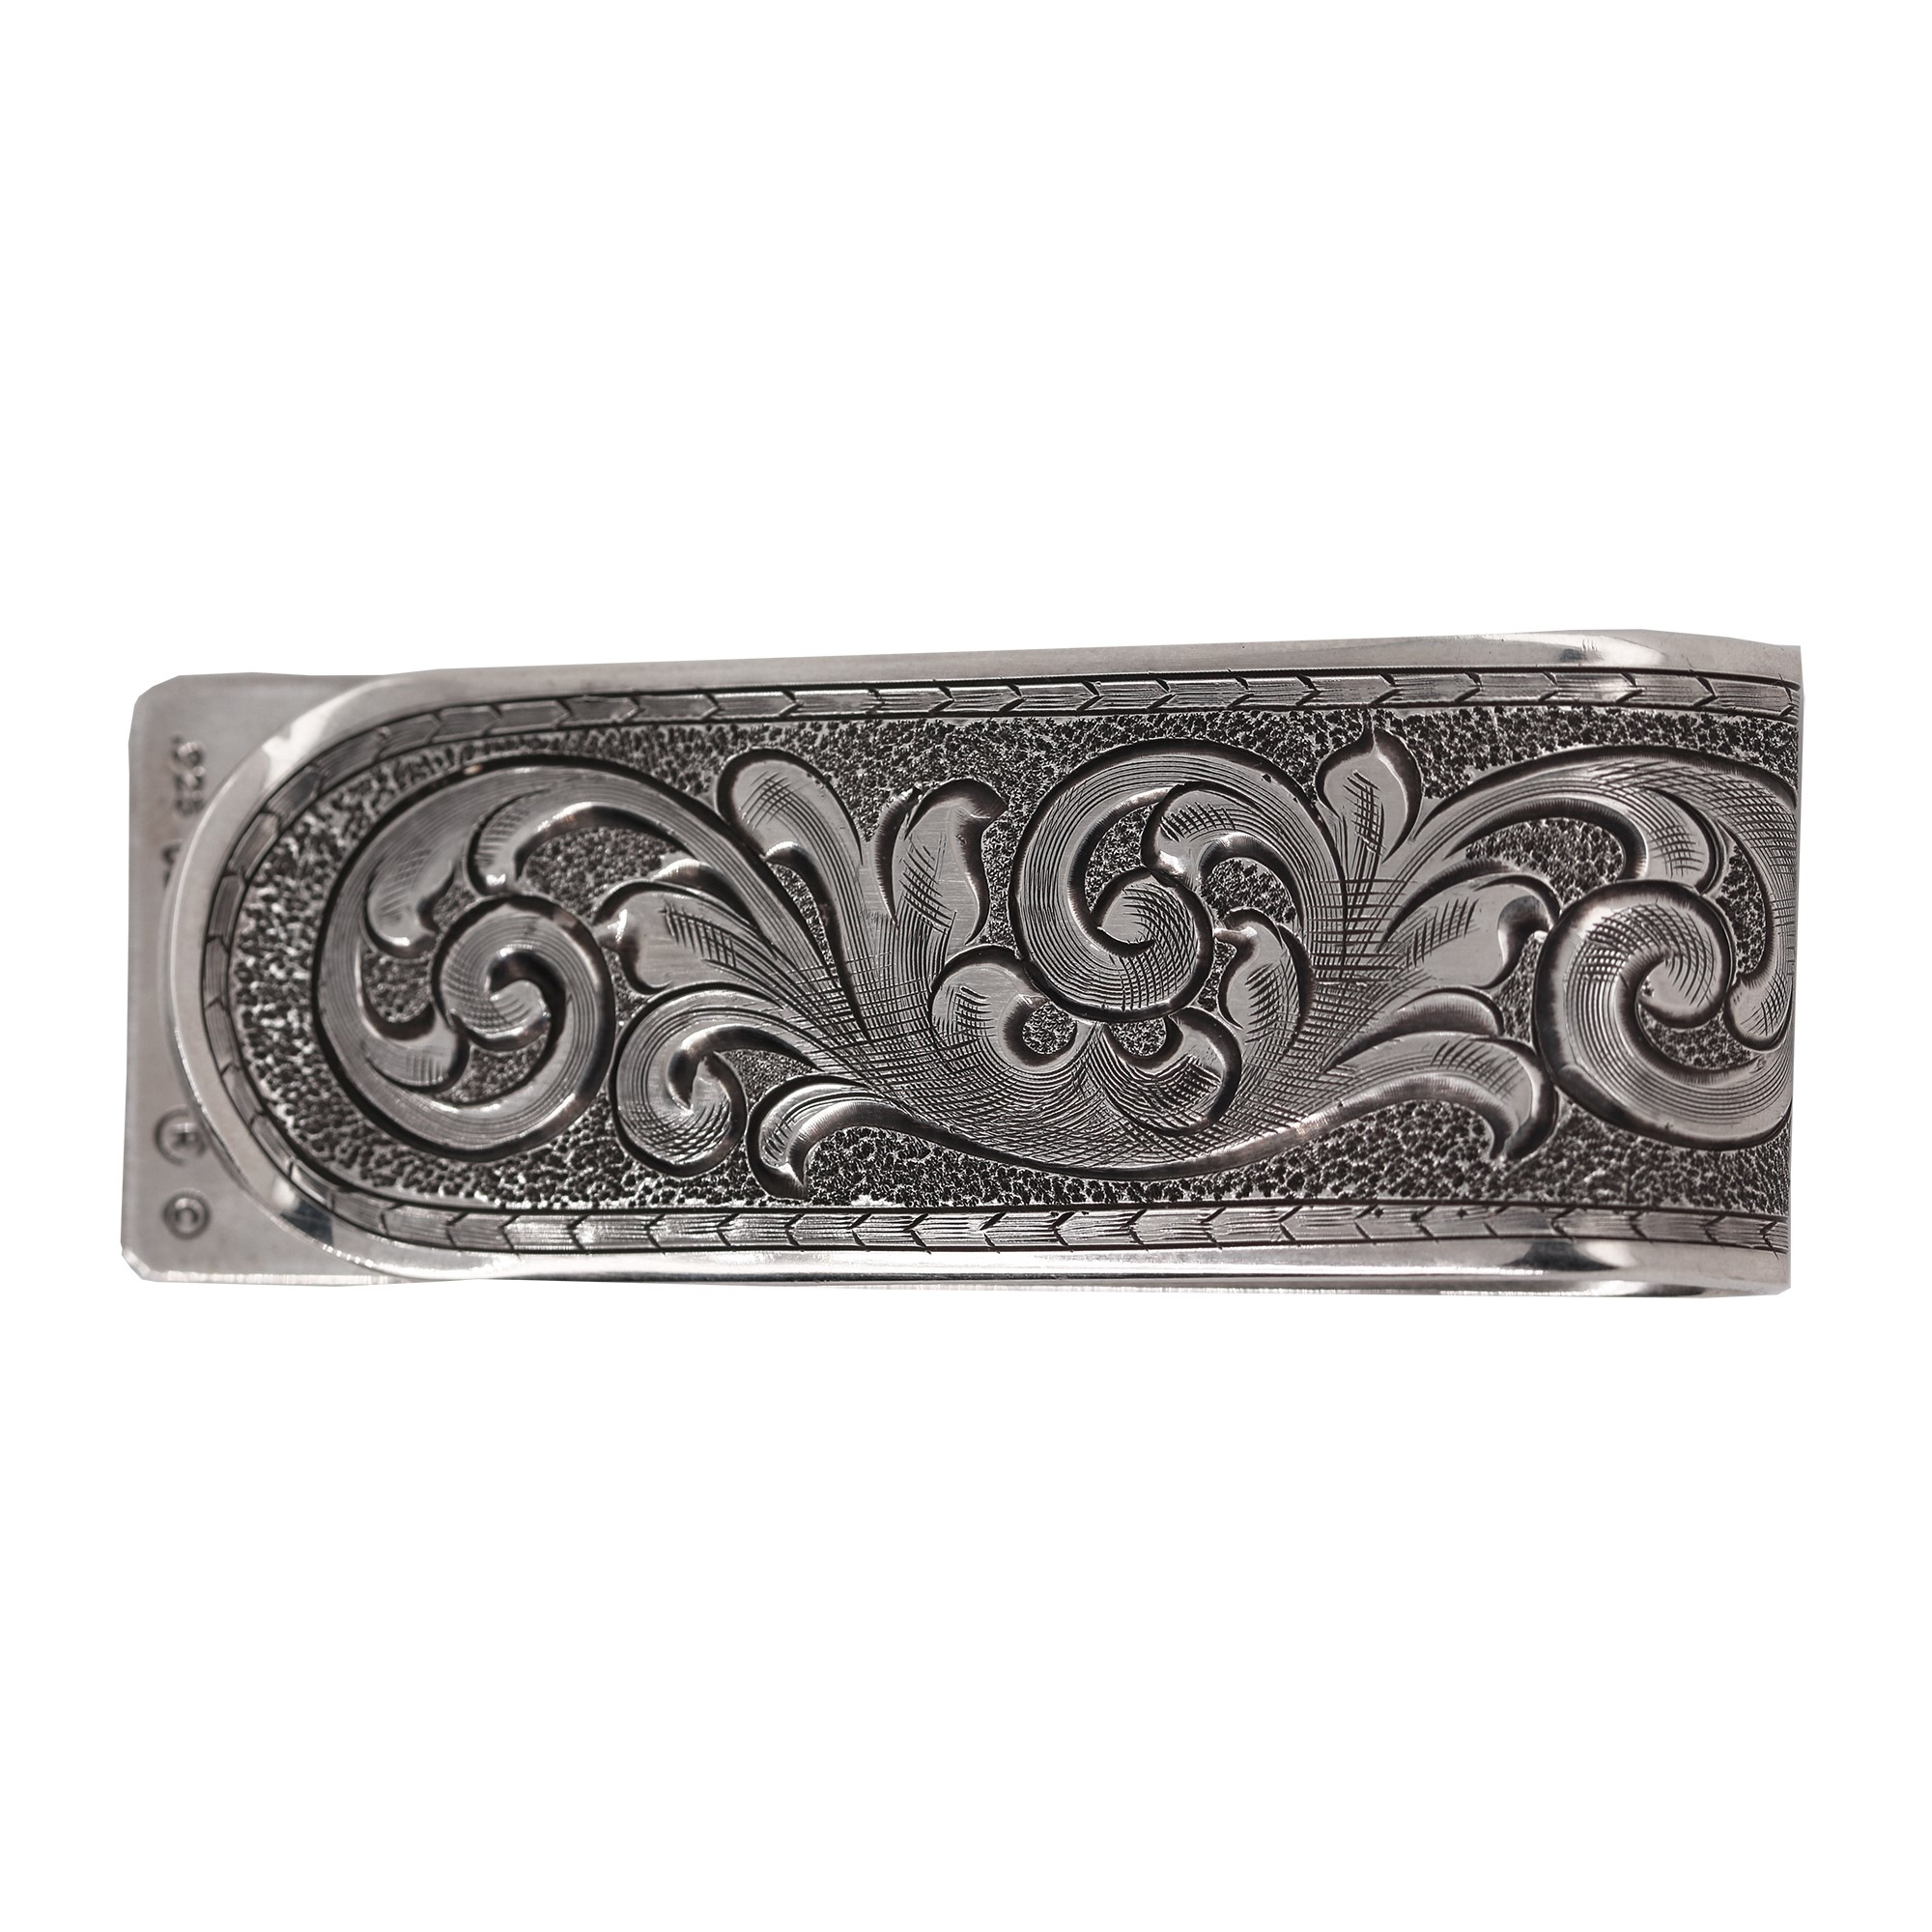 Clint Orms  Sterling Silver    Belt Buckle Folded-2056